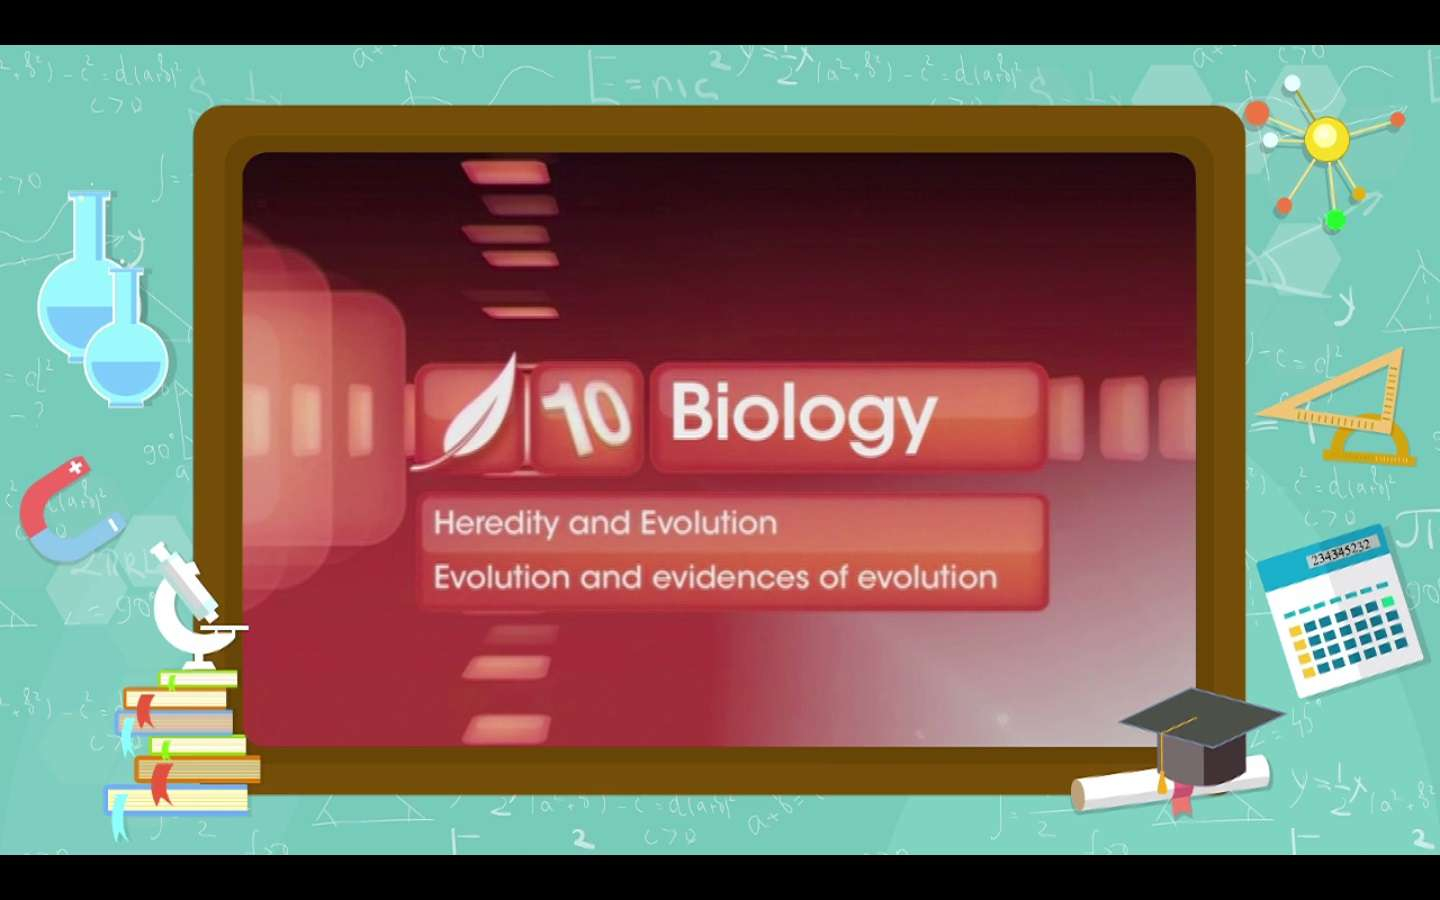 Mention Some Of The Tools For Tracing Evolutionary regarding Name Some Tools For Tracing Evolutionary Relationships